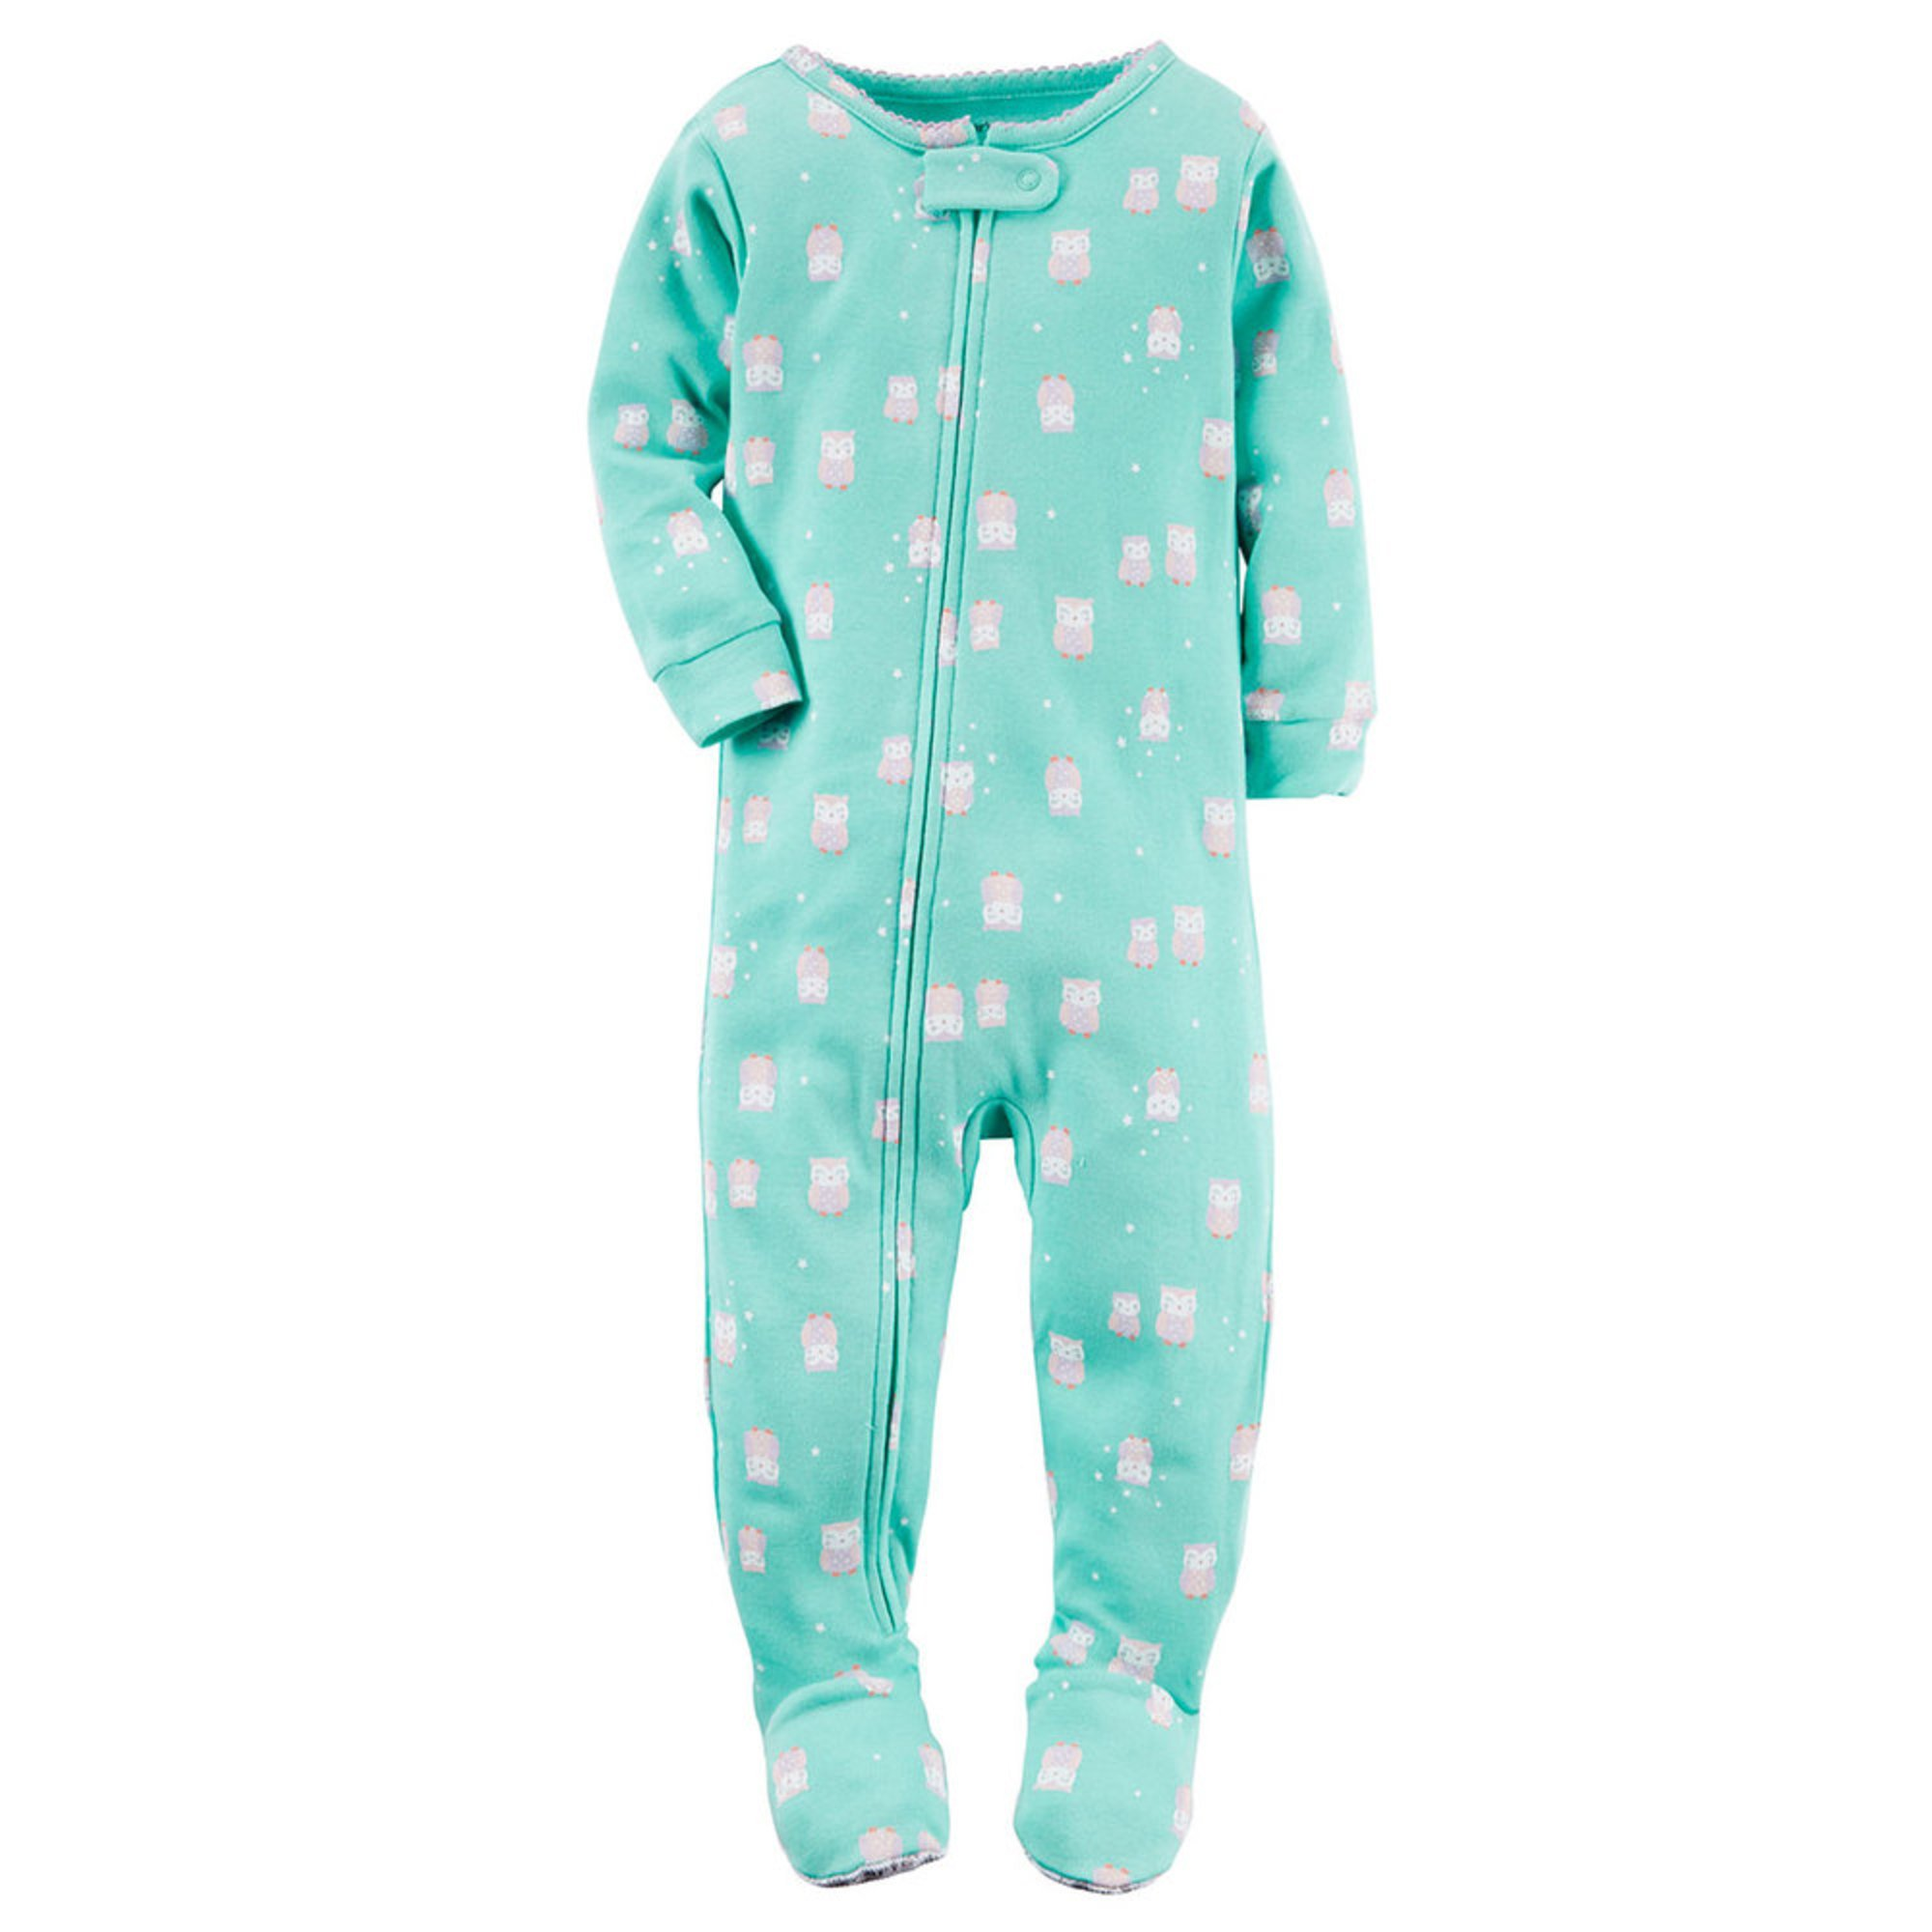 Owl Yours Adult Footie Zip right up! Our Footeez pajamas are here to wrap you in cozy comfort from head to toe. Made from super soft polar fleece, Footeez feature a %(2).